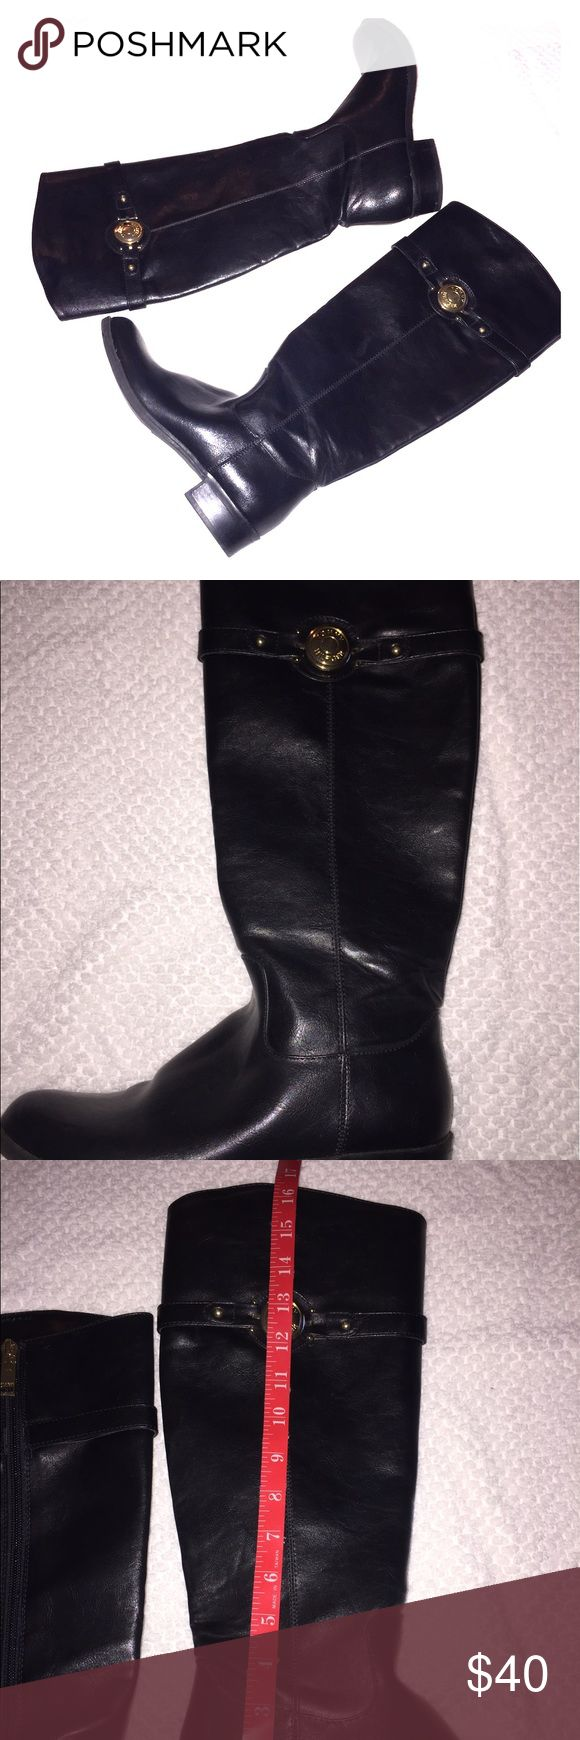 Tommy Hilfiger Boots Tommy Hilfiger knee high riding boots with Gold TH emblem. Worn only once. Size 6. Tommy Hilfiger Shoes